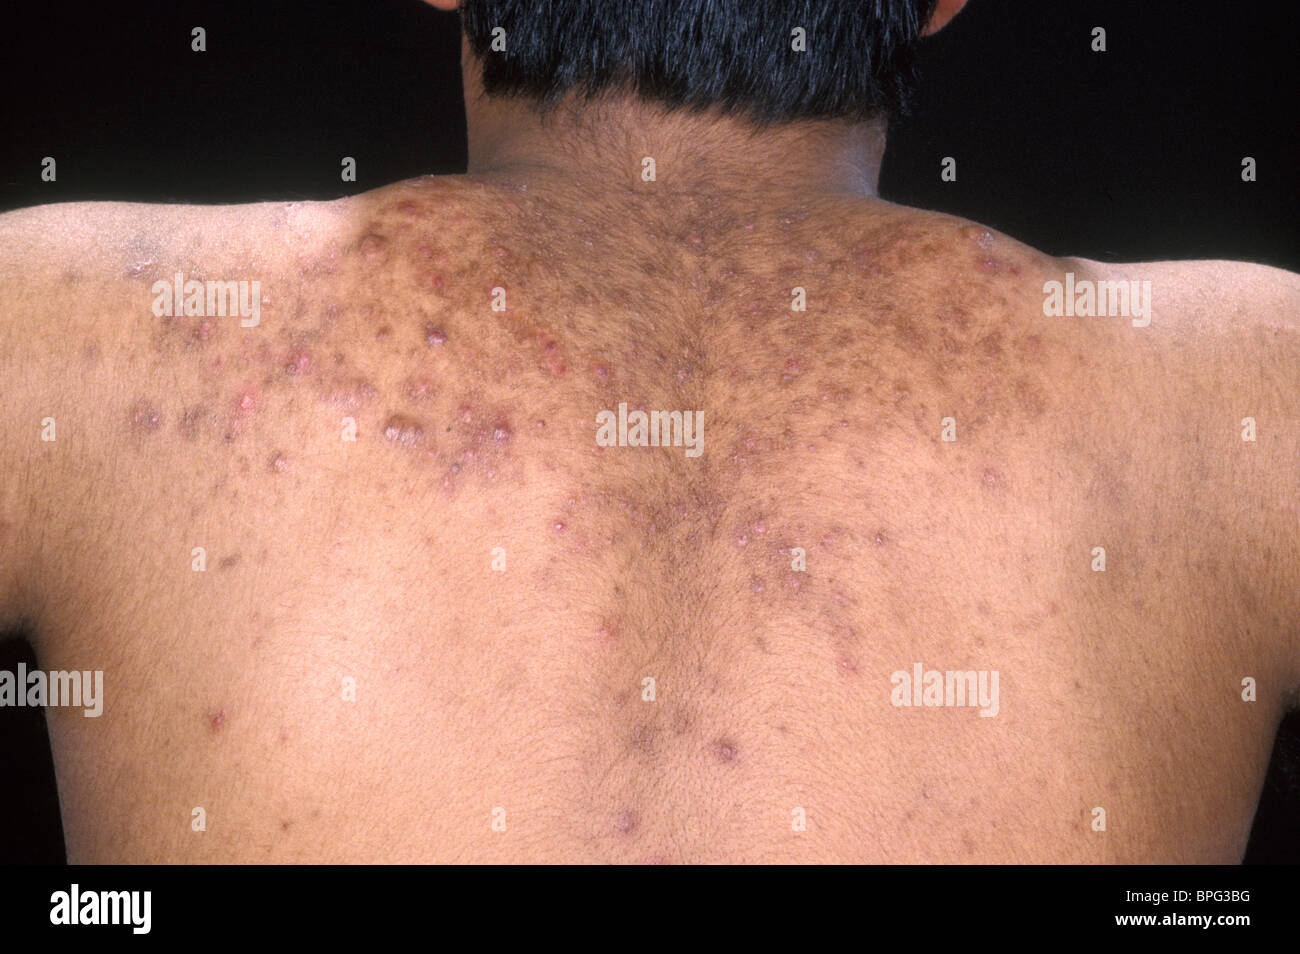 acne is a general name given to a skin disorder in which